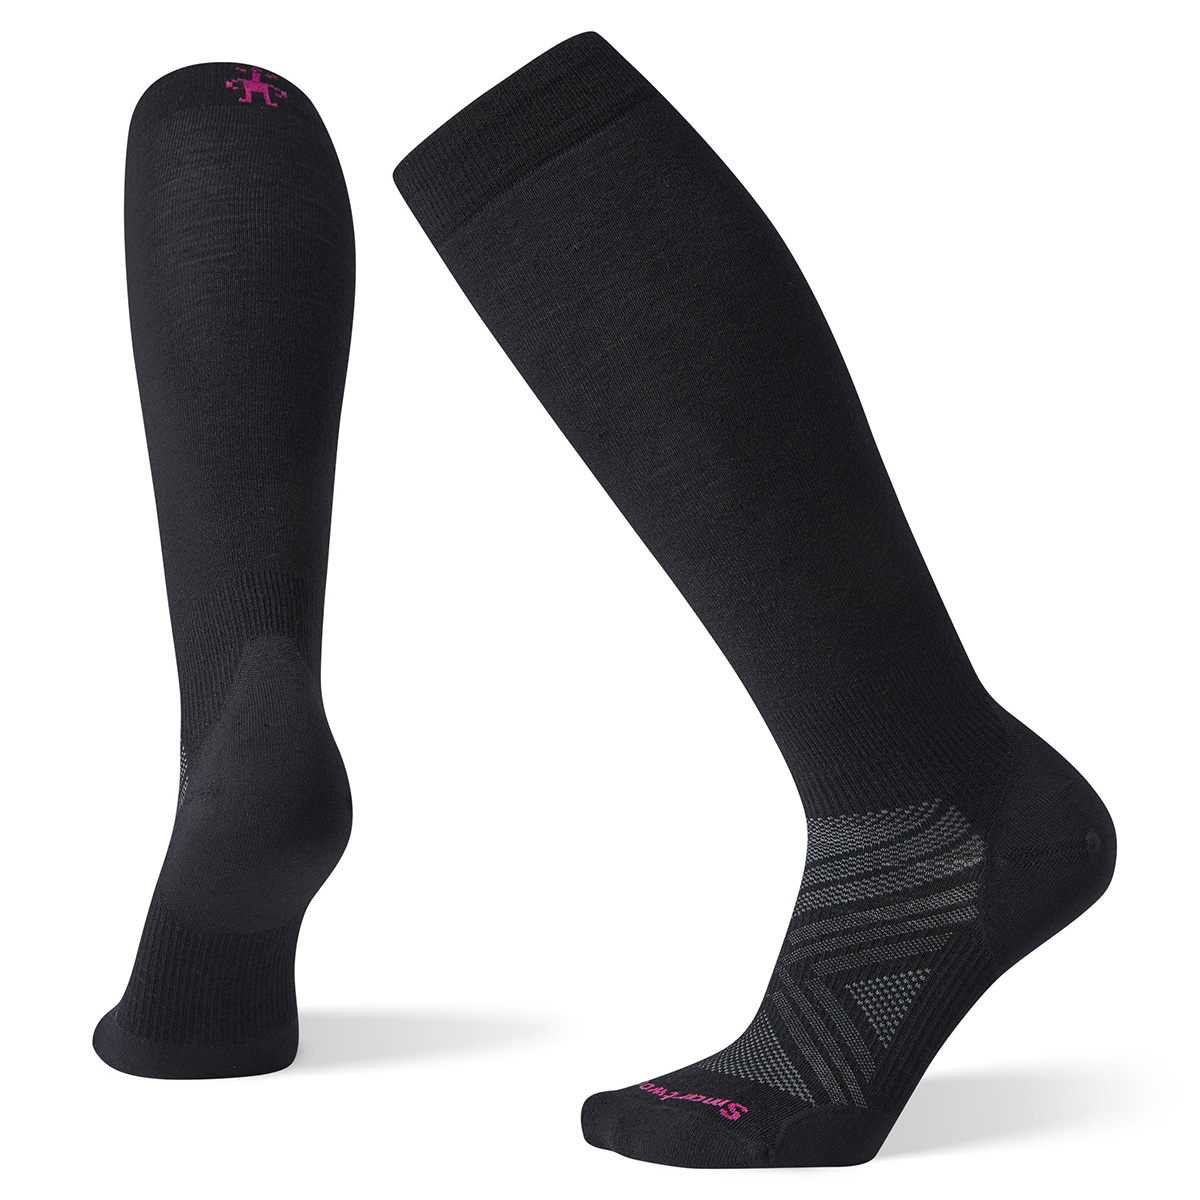 Smartwool Women's PhD® Ski Ultra Light Socks